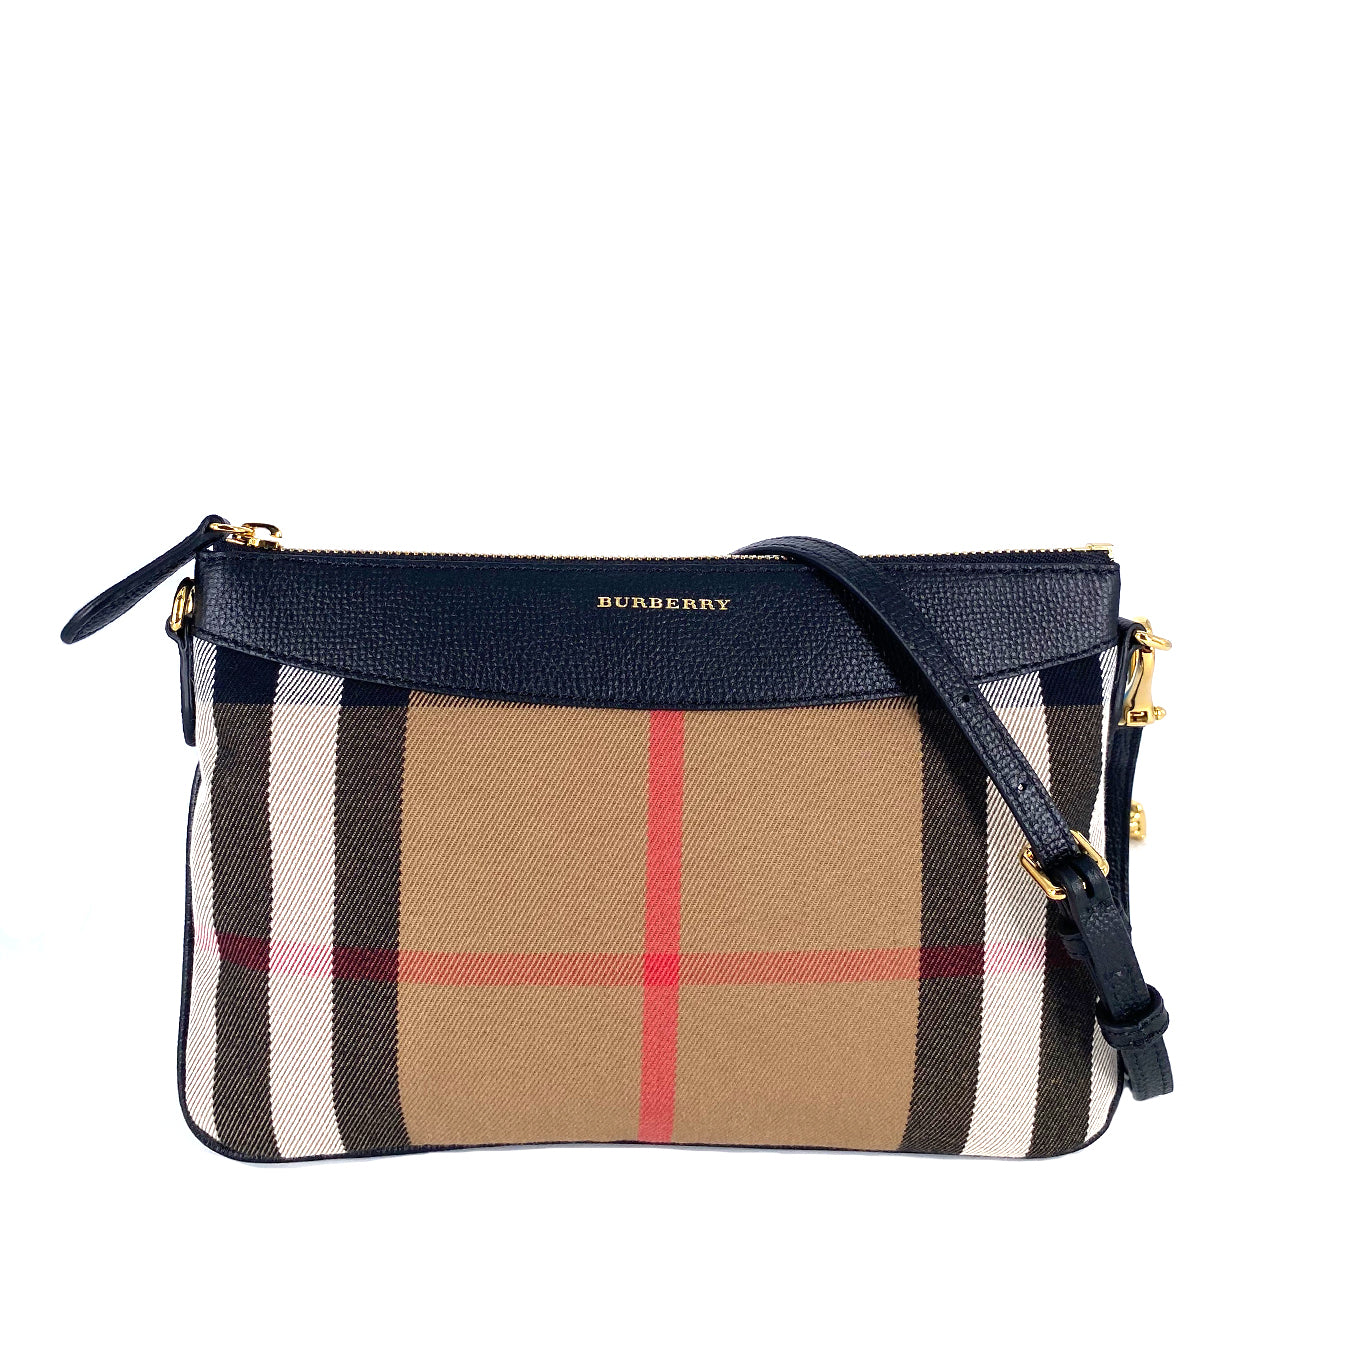 Burberry 'Peyton - House Check' Crossbody Bag in Black